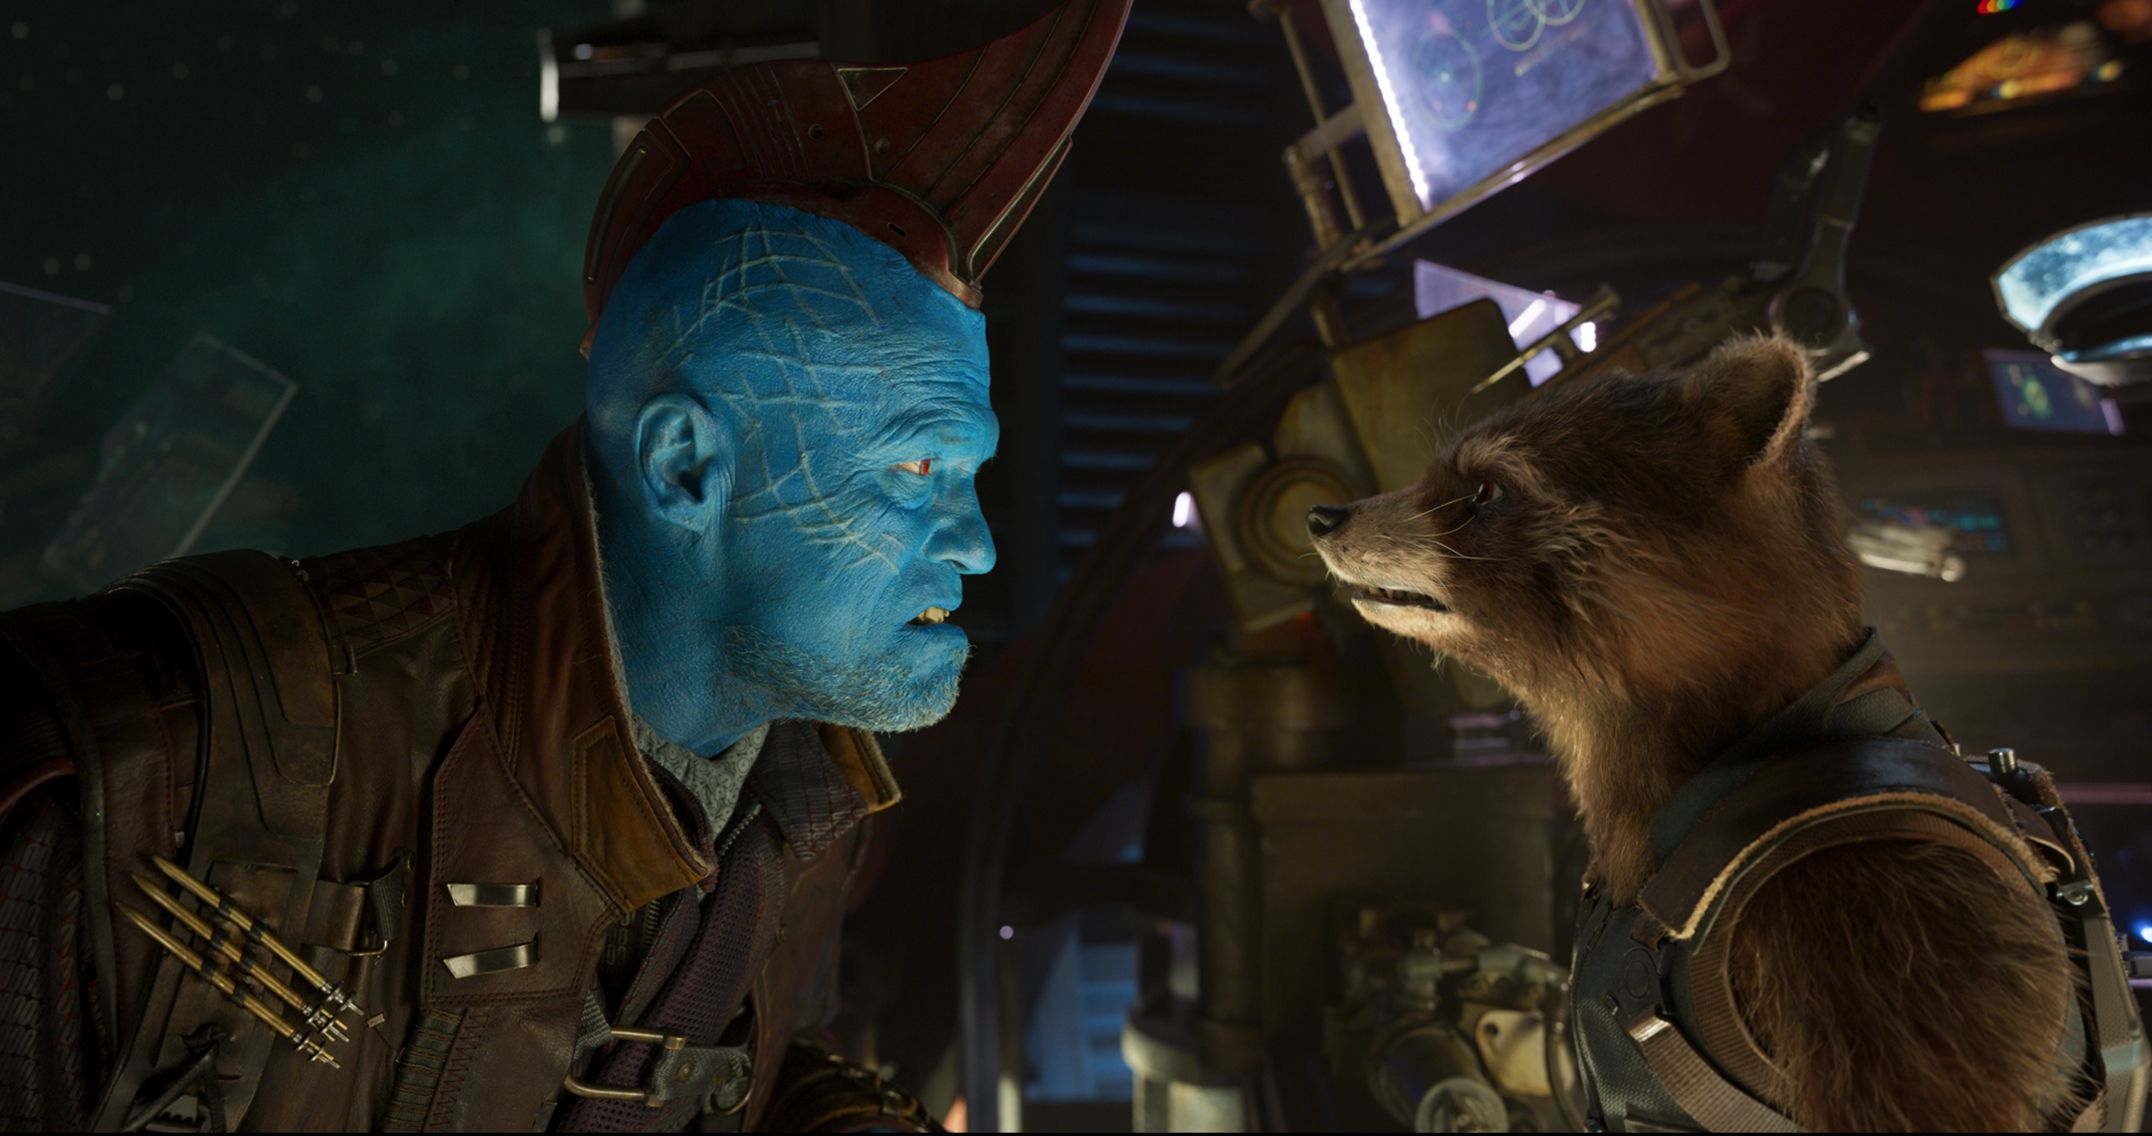 guardians of the galaxy - photo #23